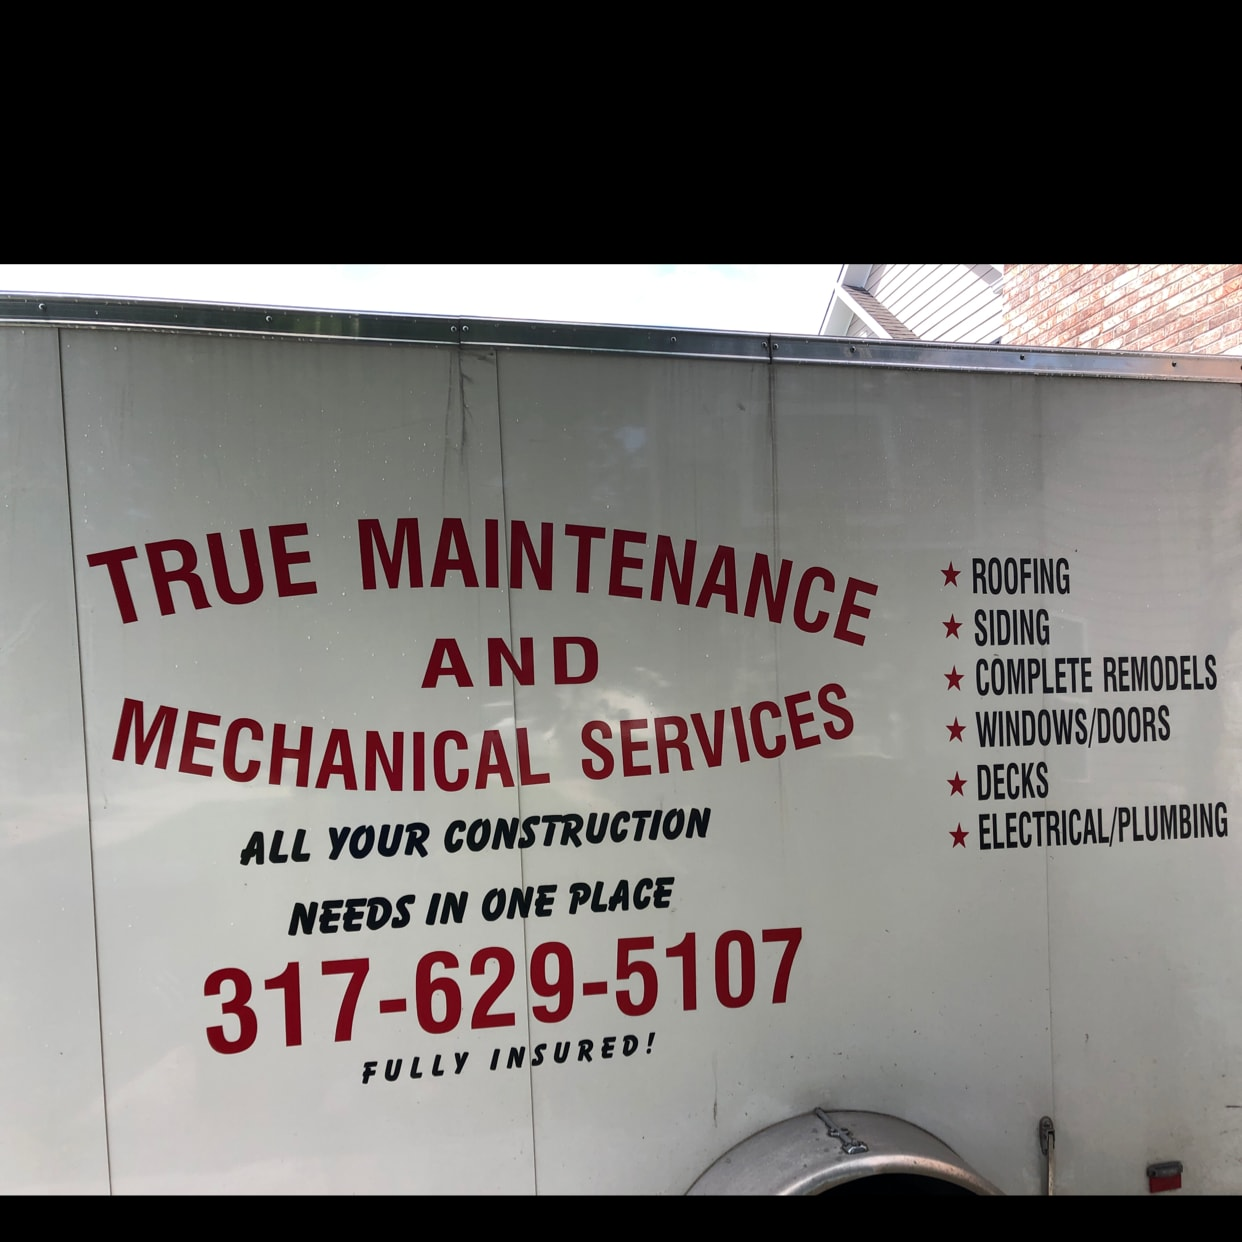 True Maintenance and Mechanical Services